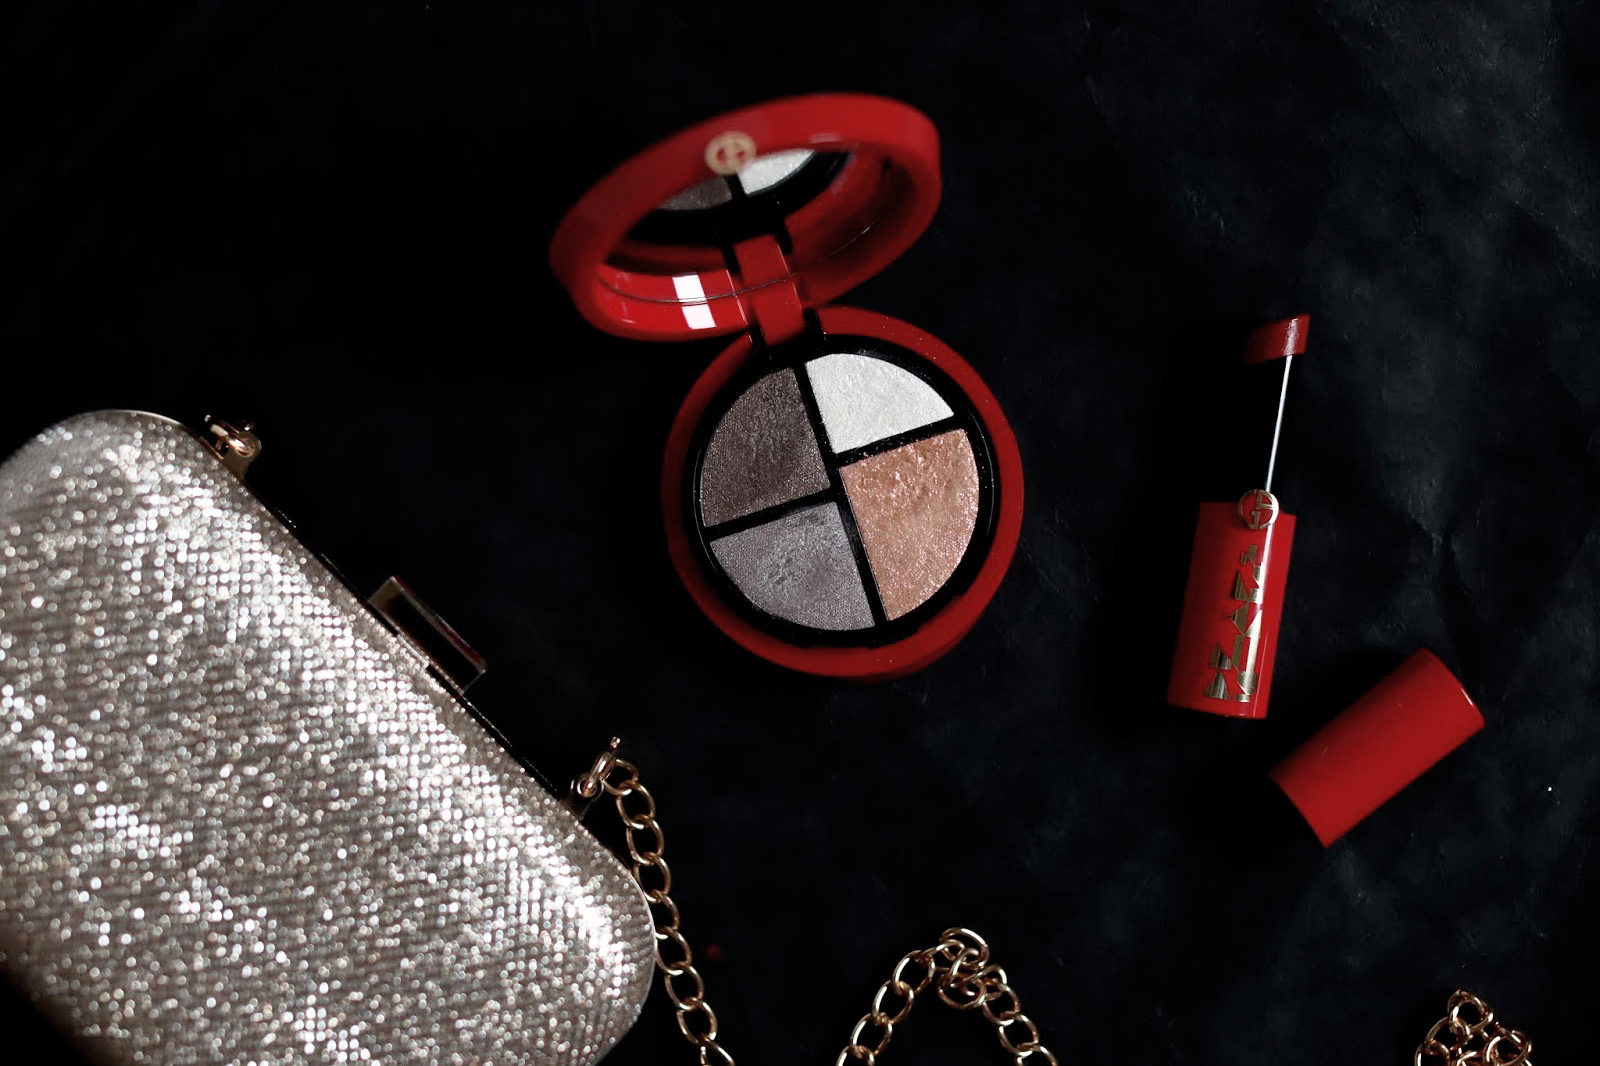 armani collection maquillage noel 2018 look palette 9 eye excess rouge à lèvres ecstasy shine 403 avis test swatch swatches